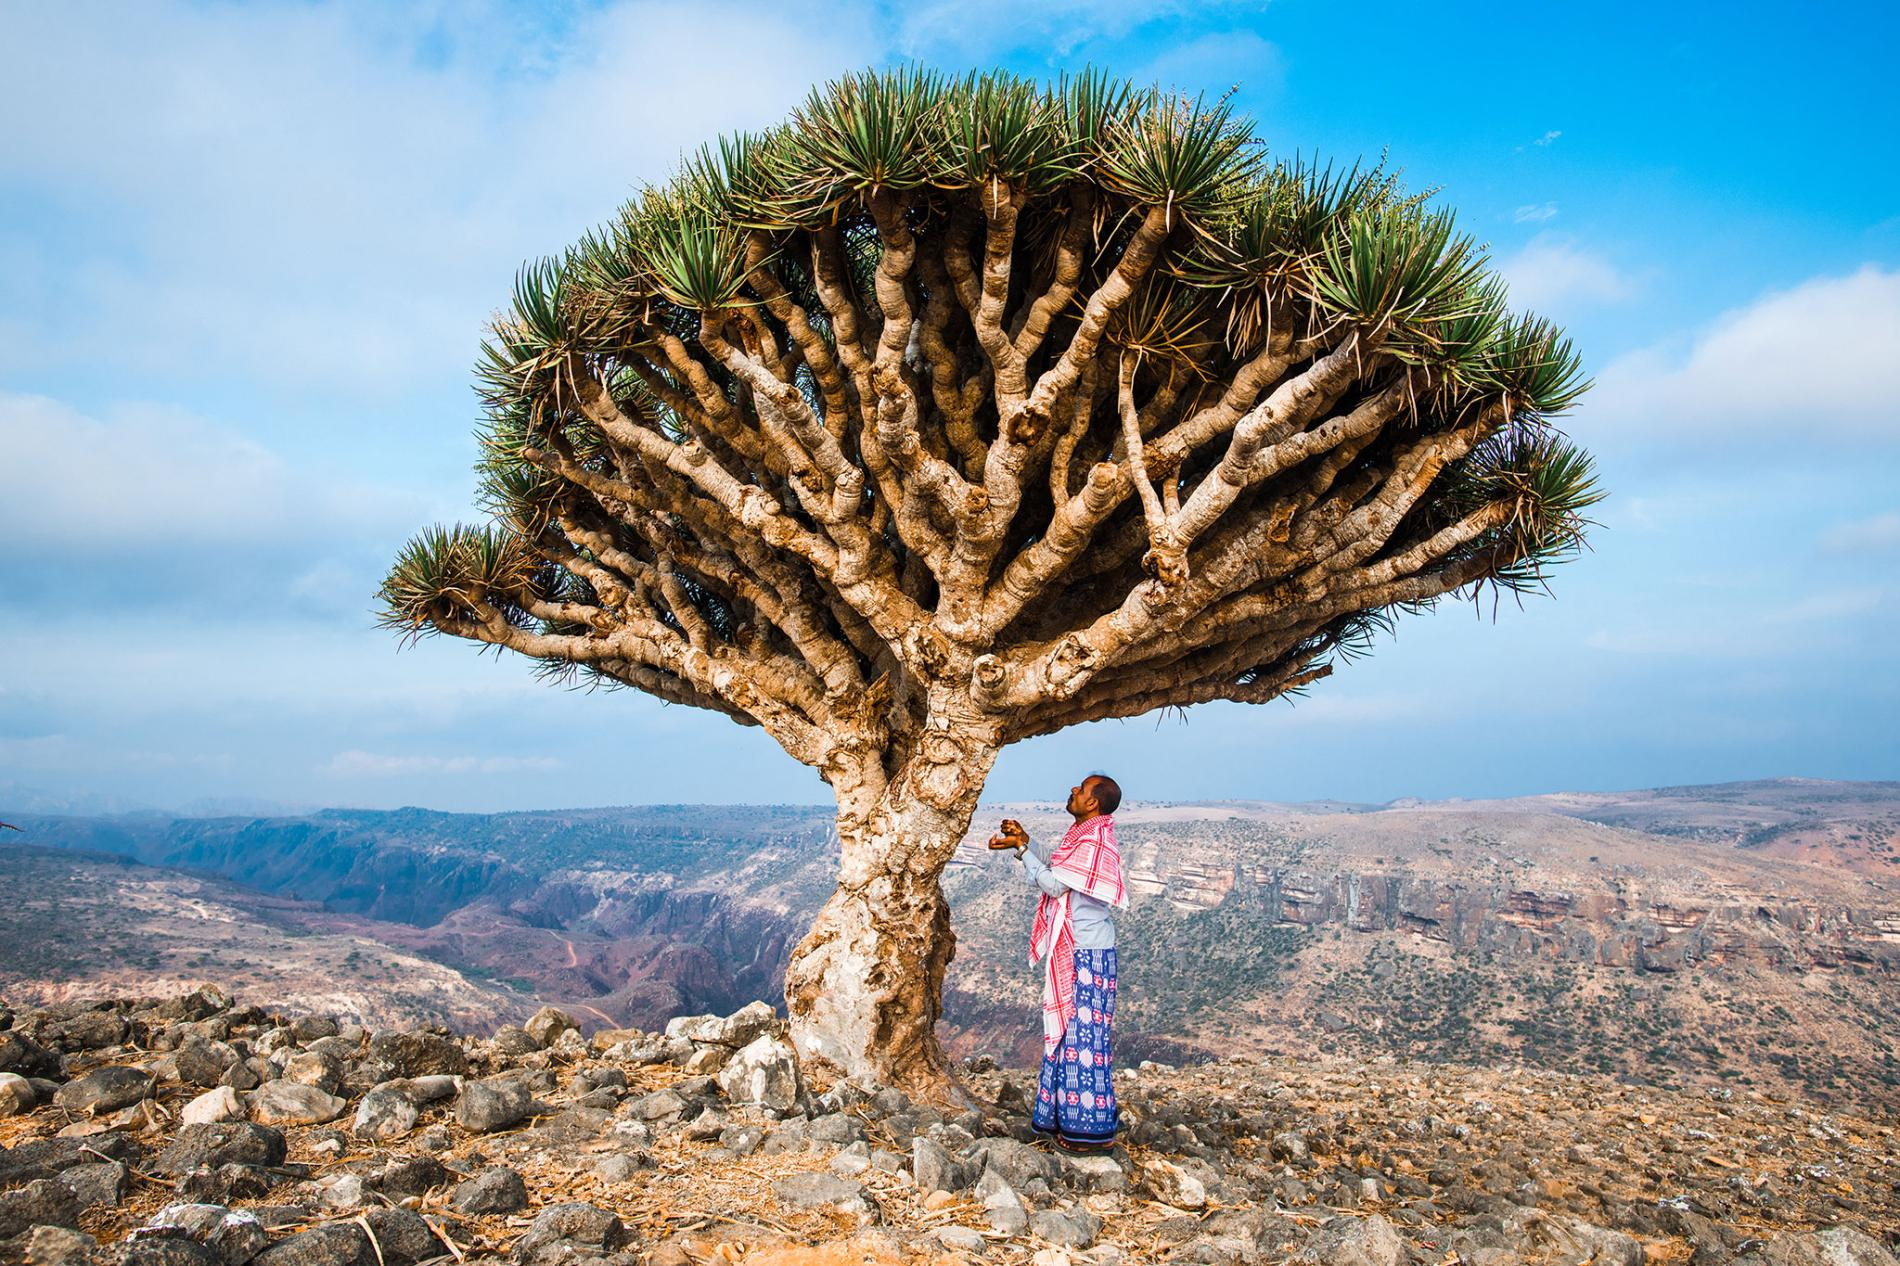 The Socotra Archipelago Project - Preserving and protecting Socotra